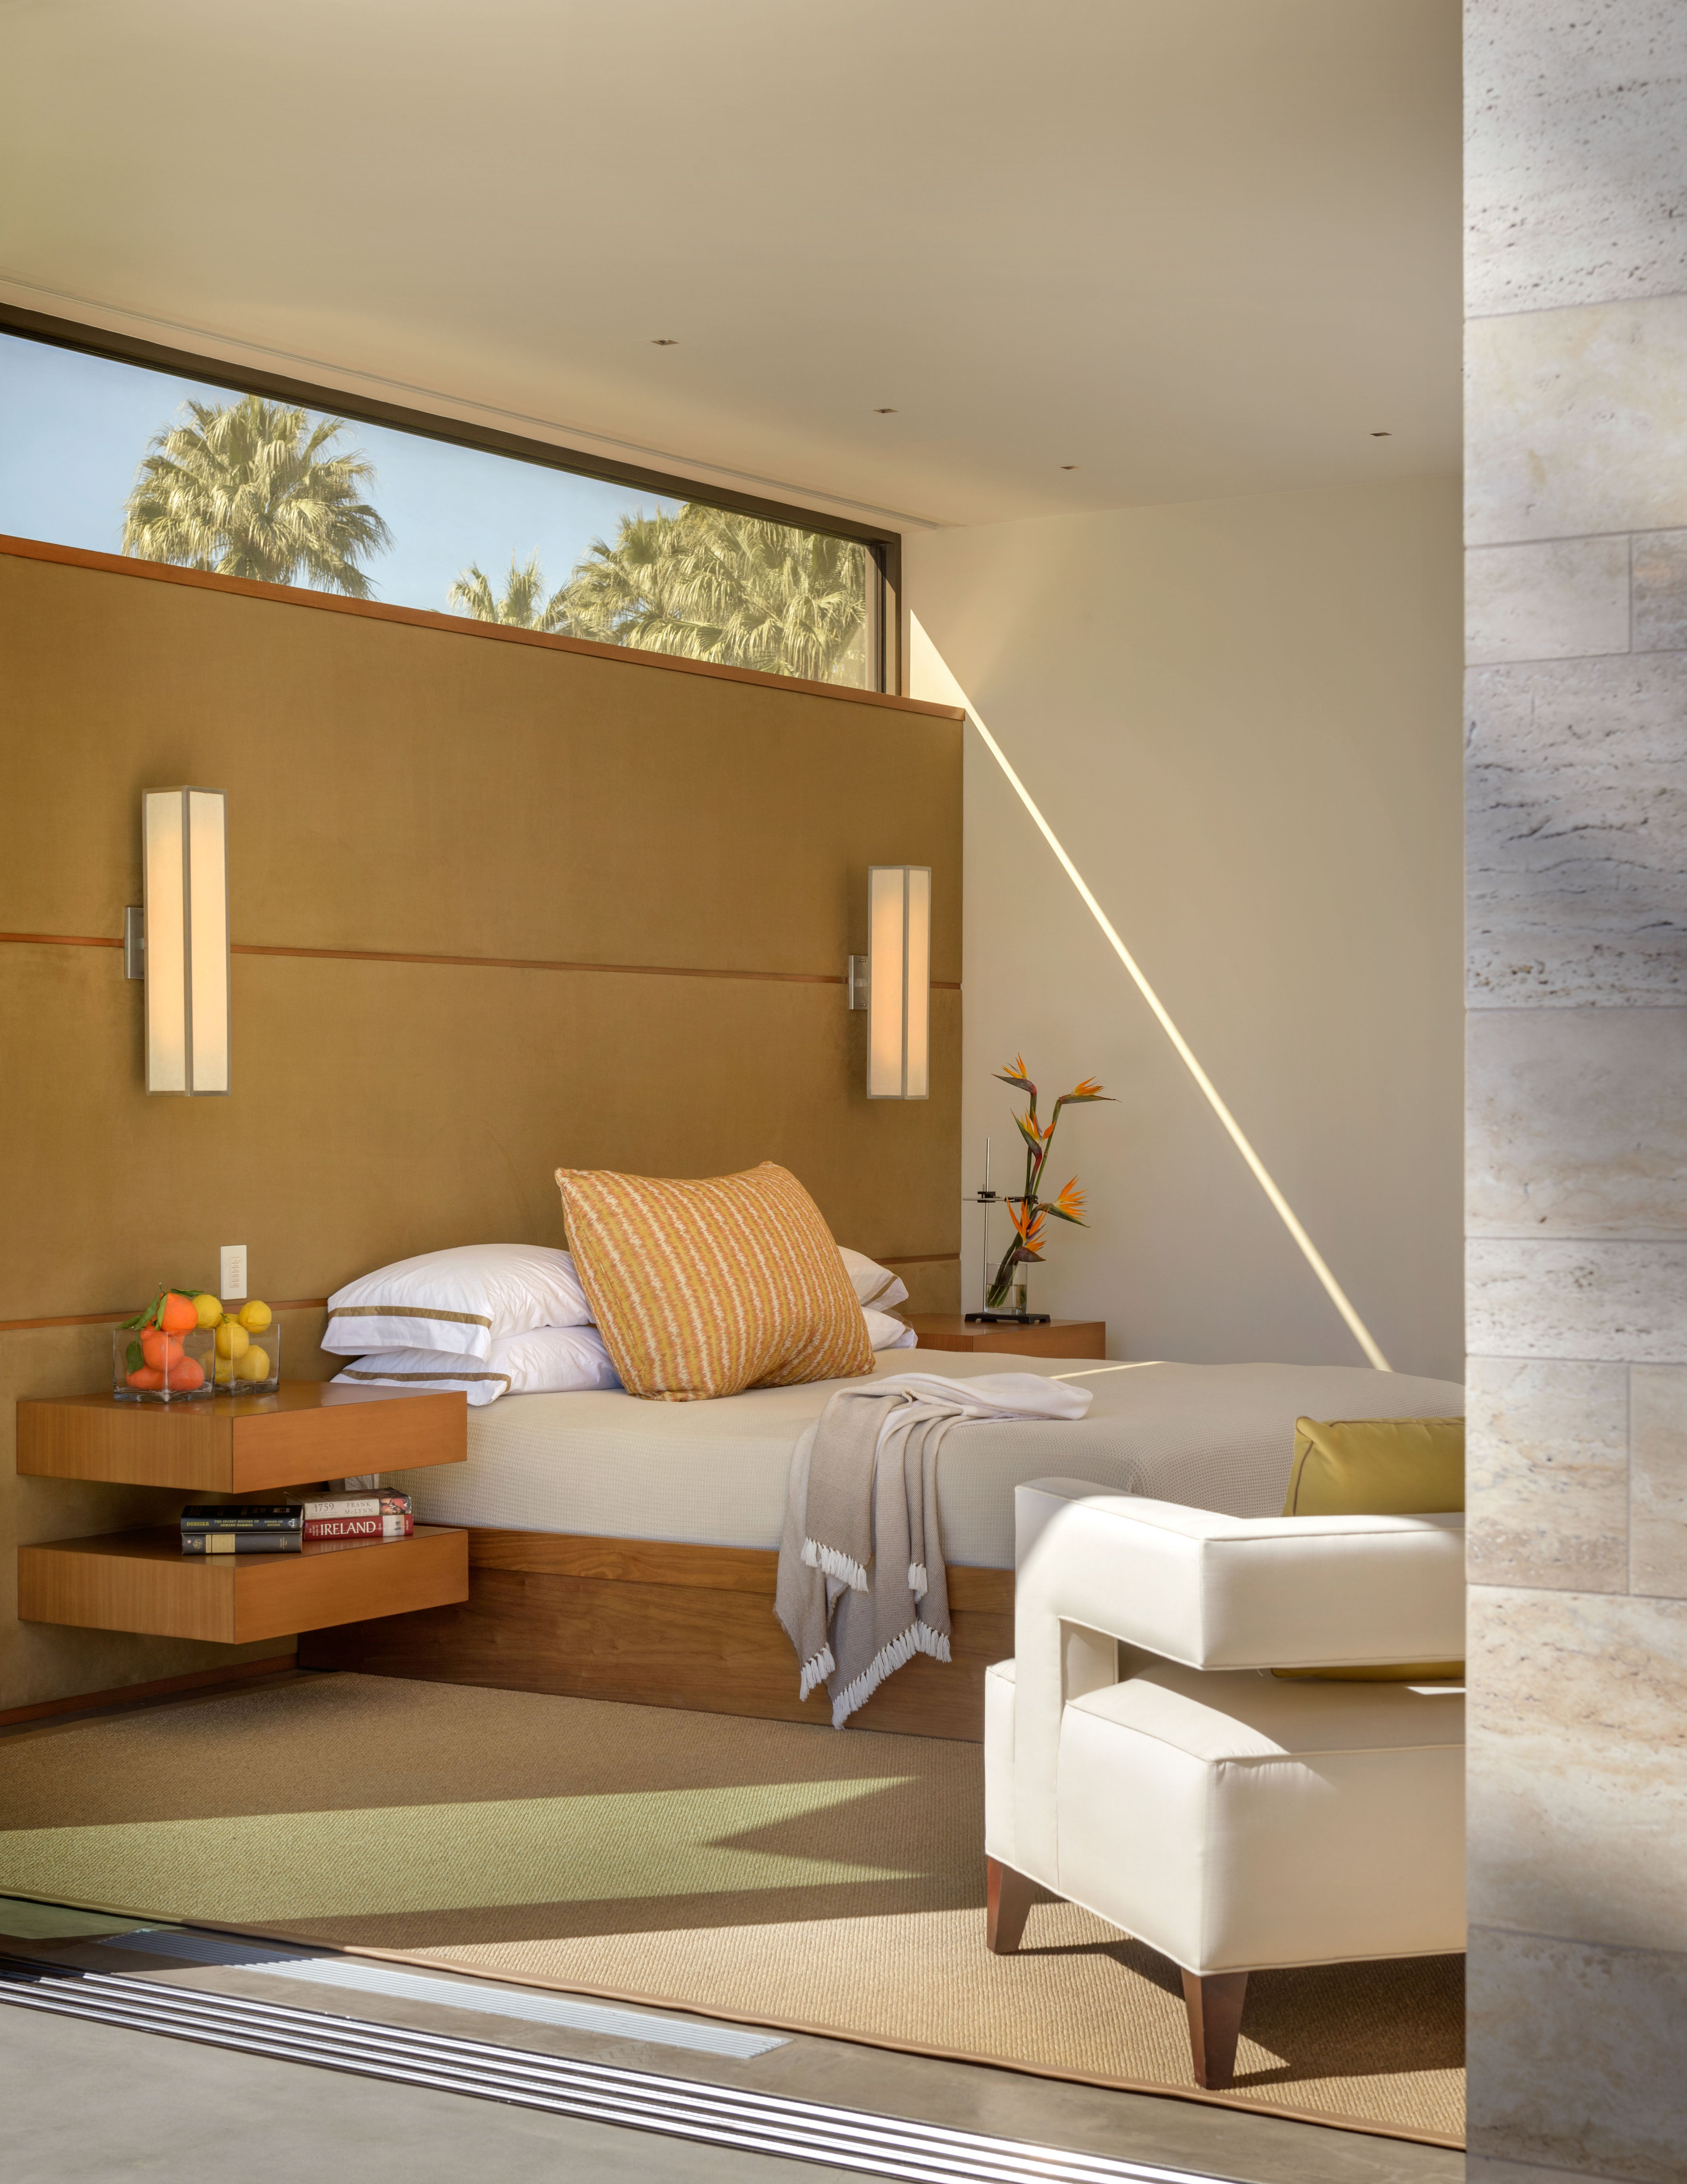 Bedroom By The Wiseman Group Interior Design Inc